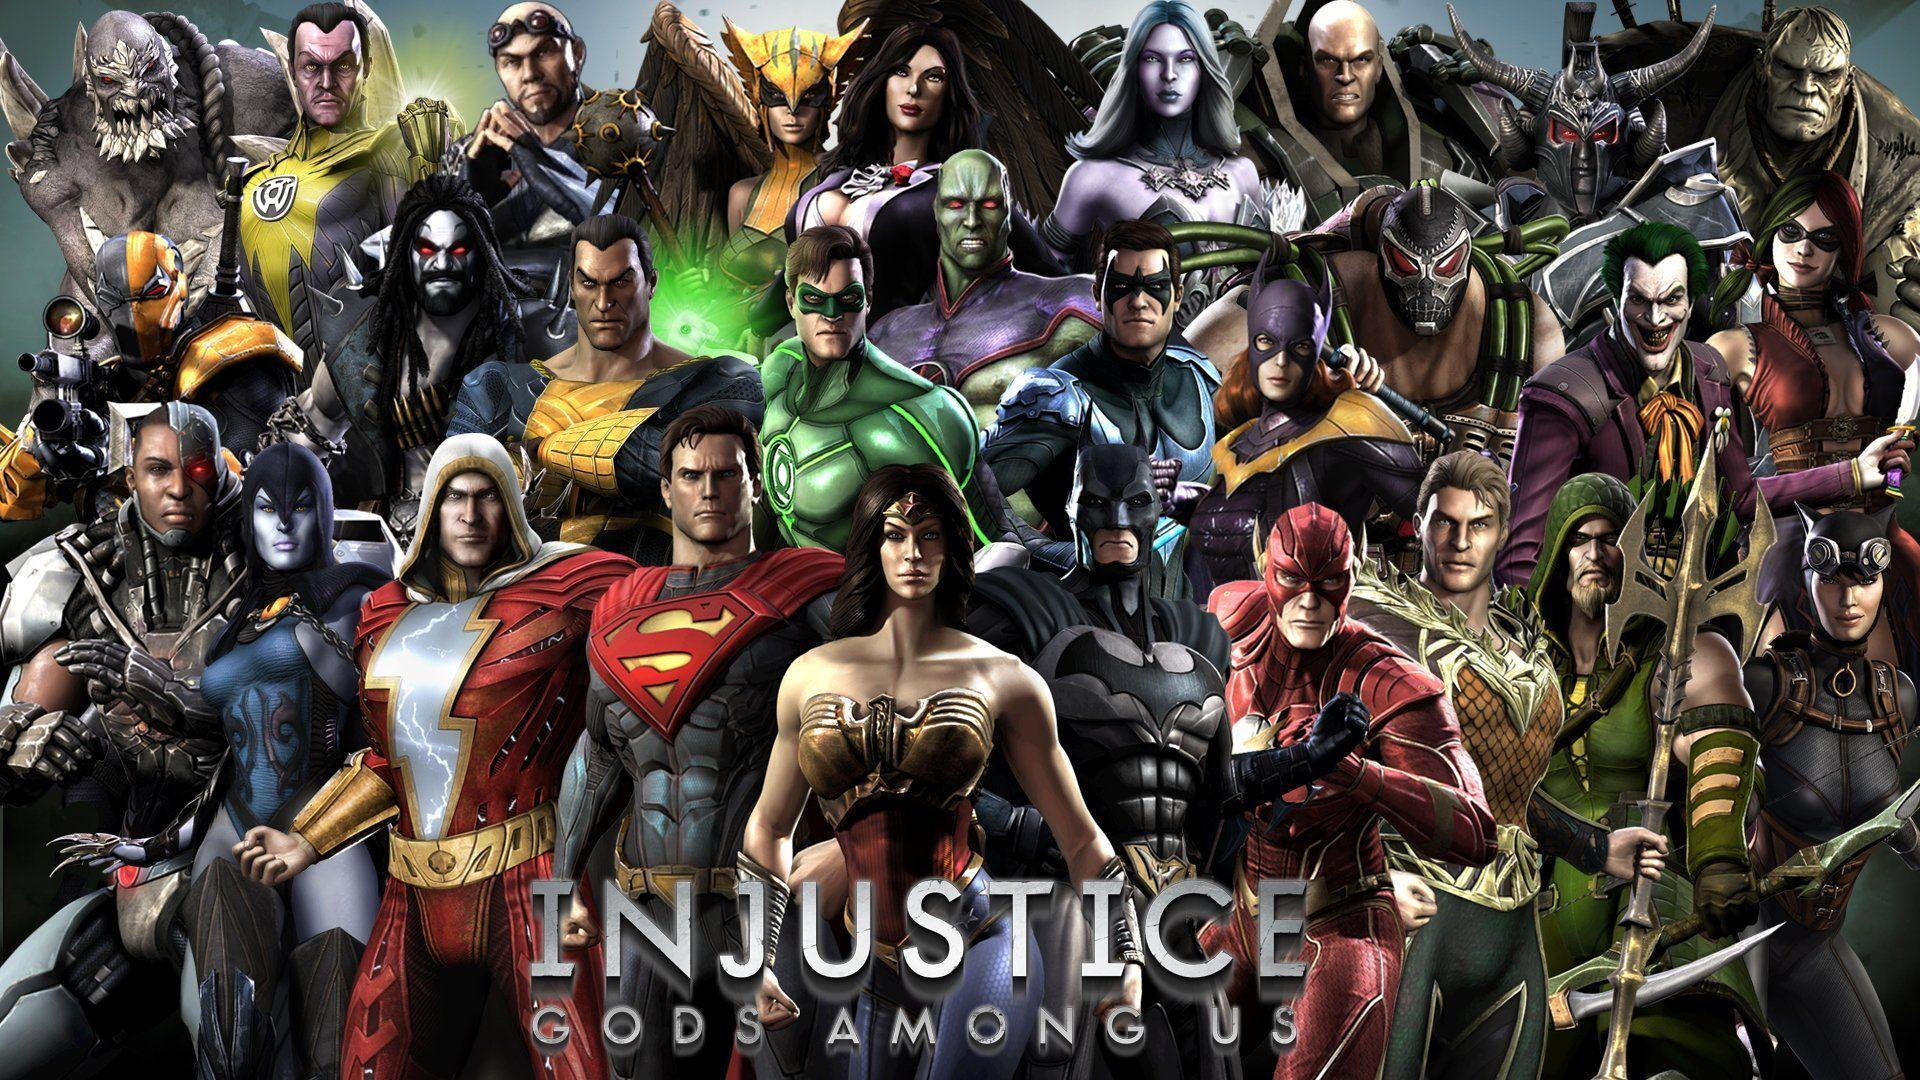 Injustice Gods Among Us Wallpapers Wallpaper Cave